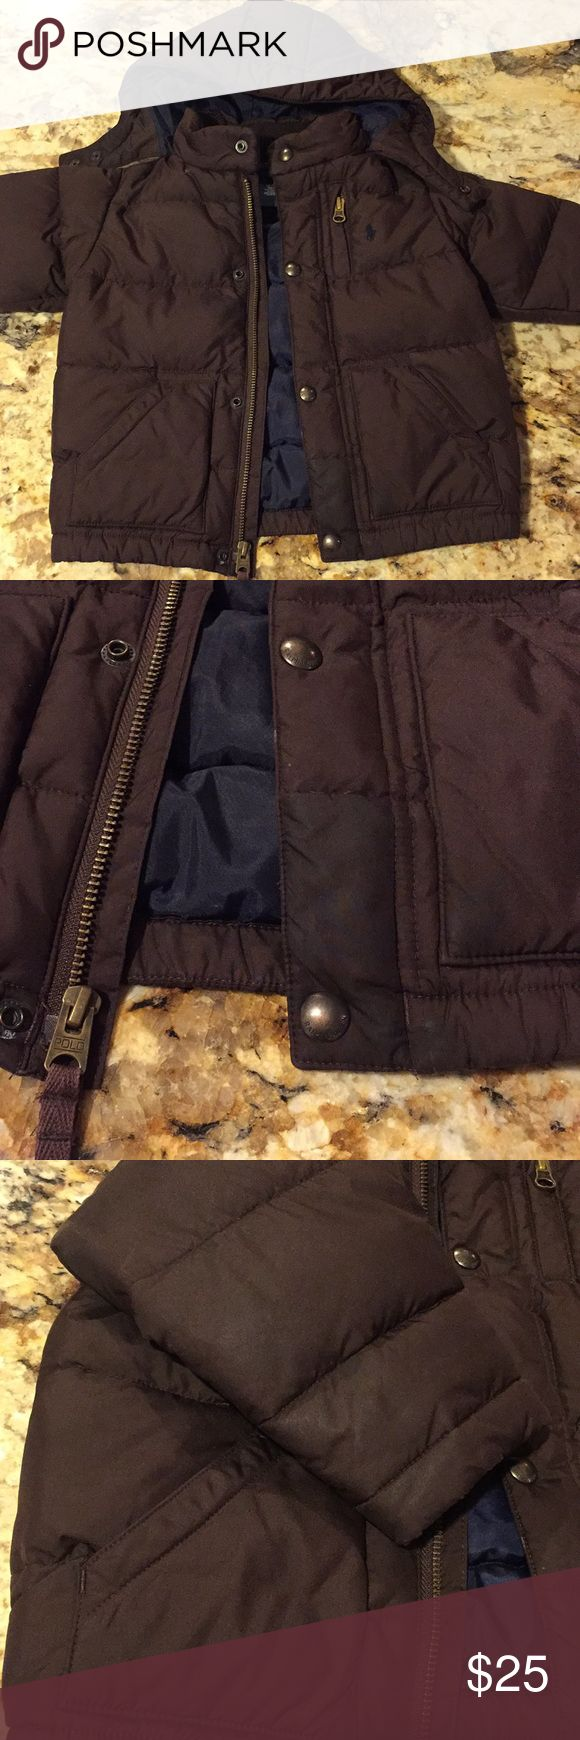 24 month old Polo jacket Used and worn with some stains, the hood is removable, zipper works fine also has buttons, has stains throughout. Polo by Ralph Lauren Jackets & Coats